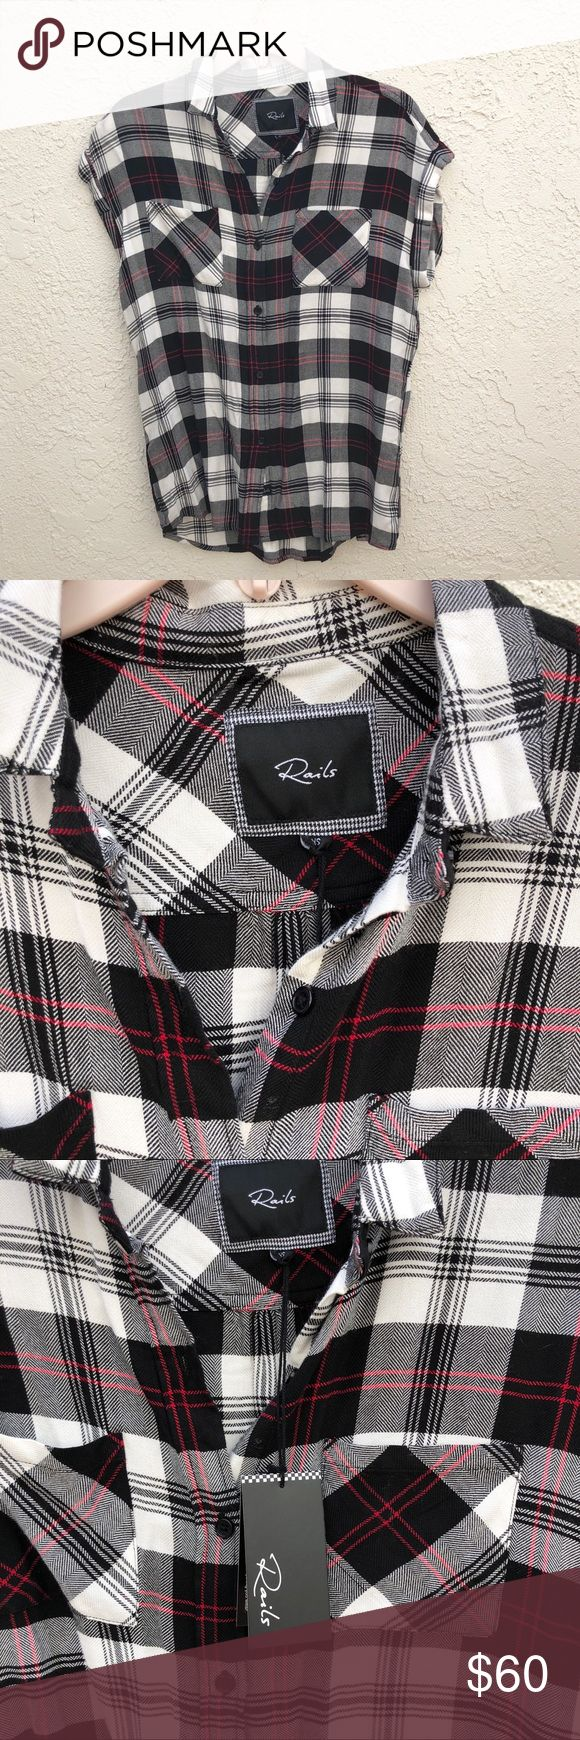 NWT Rails Brit Short Sleeve Flannel Button Down NWT Rails Brit Short Sleeve Flannel Button Down, XS. Perfect condition ! Super soft top quality!  Time to find it a new home. Black with thin red stripes Rails Tops Button Down Shirts